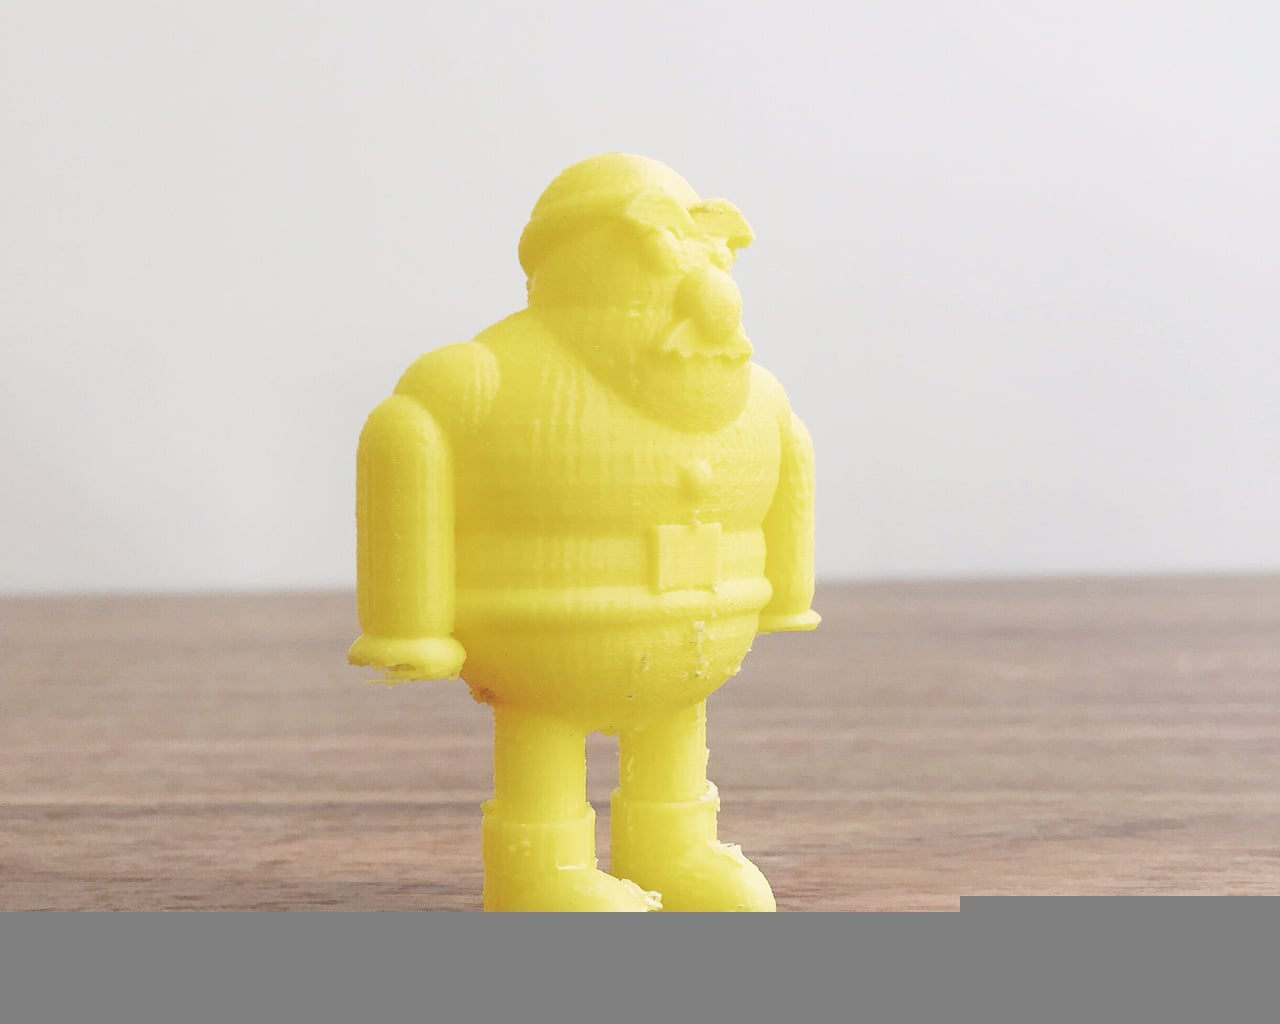 Made using Makers Empire 3D design and printing app